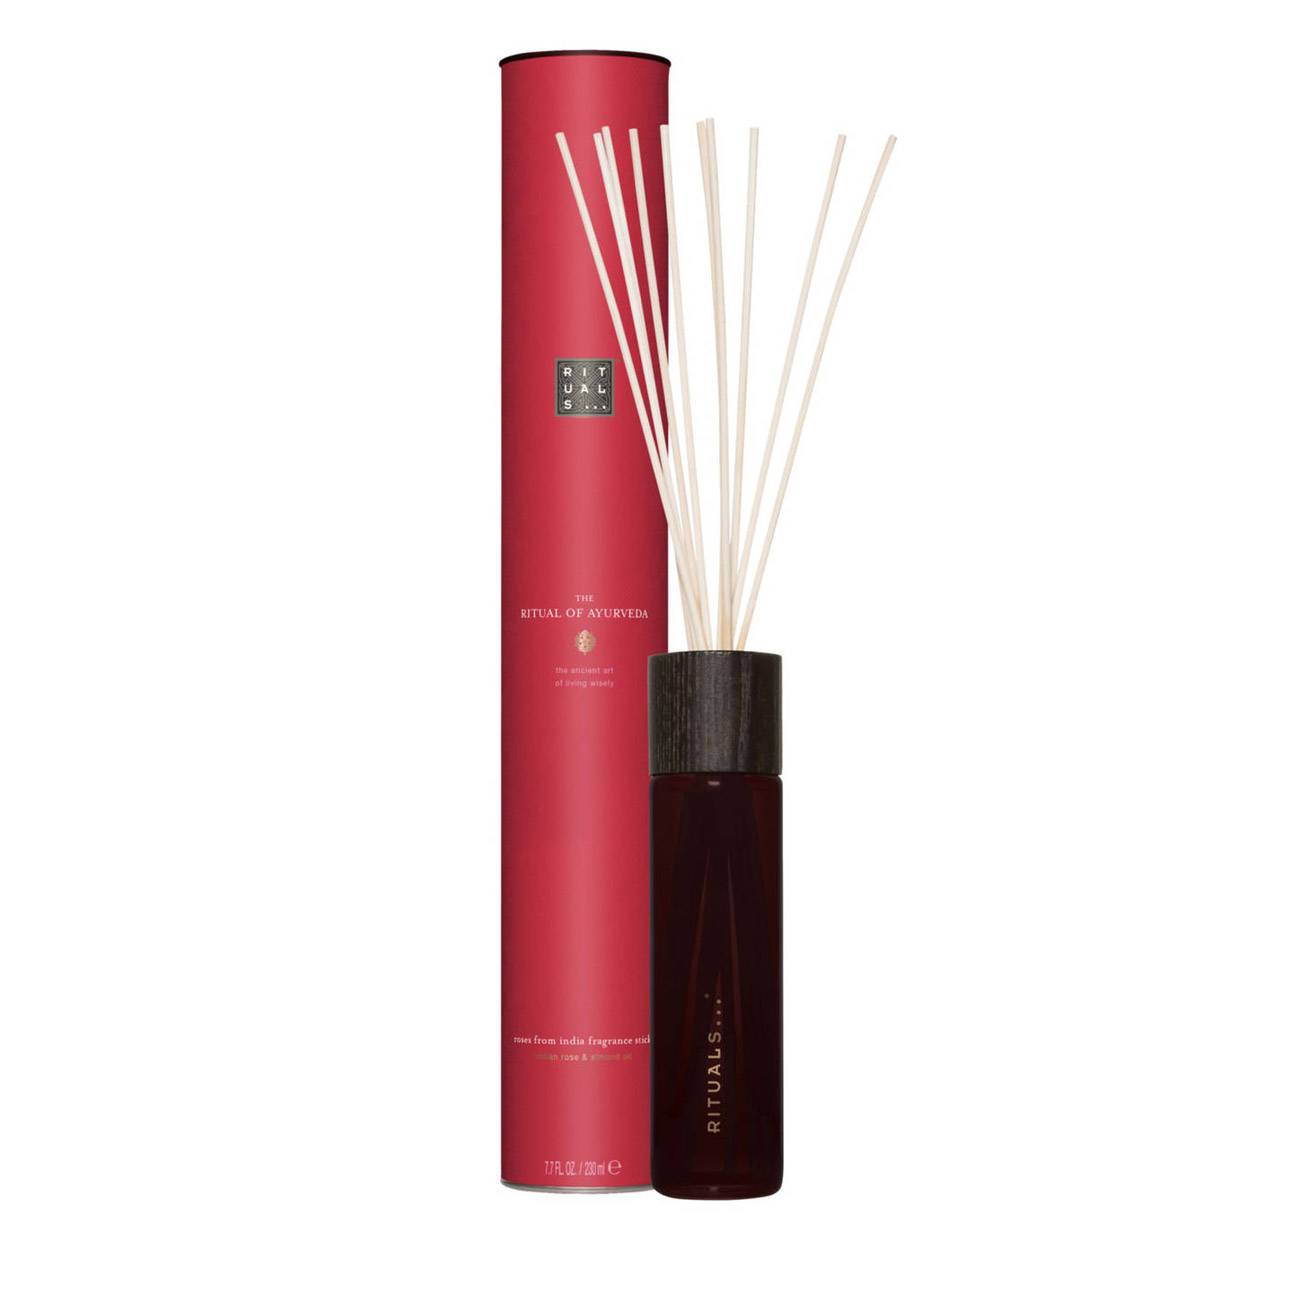 Ayurveda Fragrance Sticks 230 Ml Rituals imagine 2021 bestvalue.eu